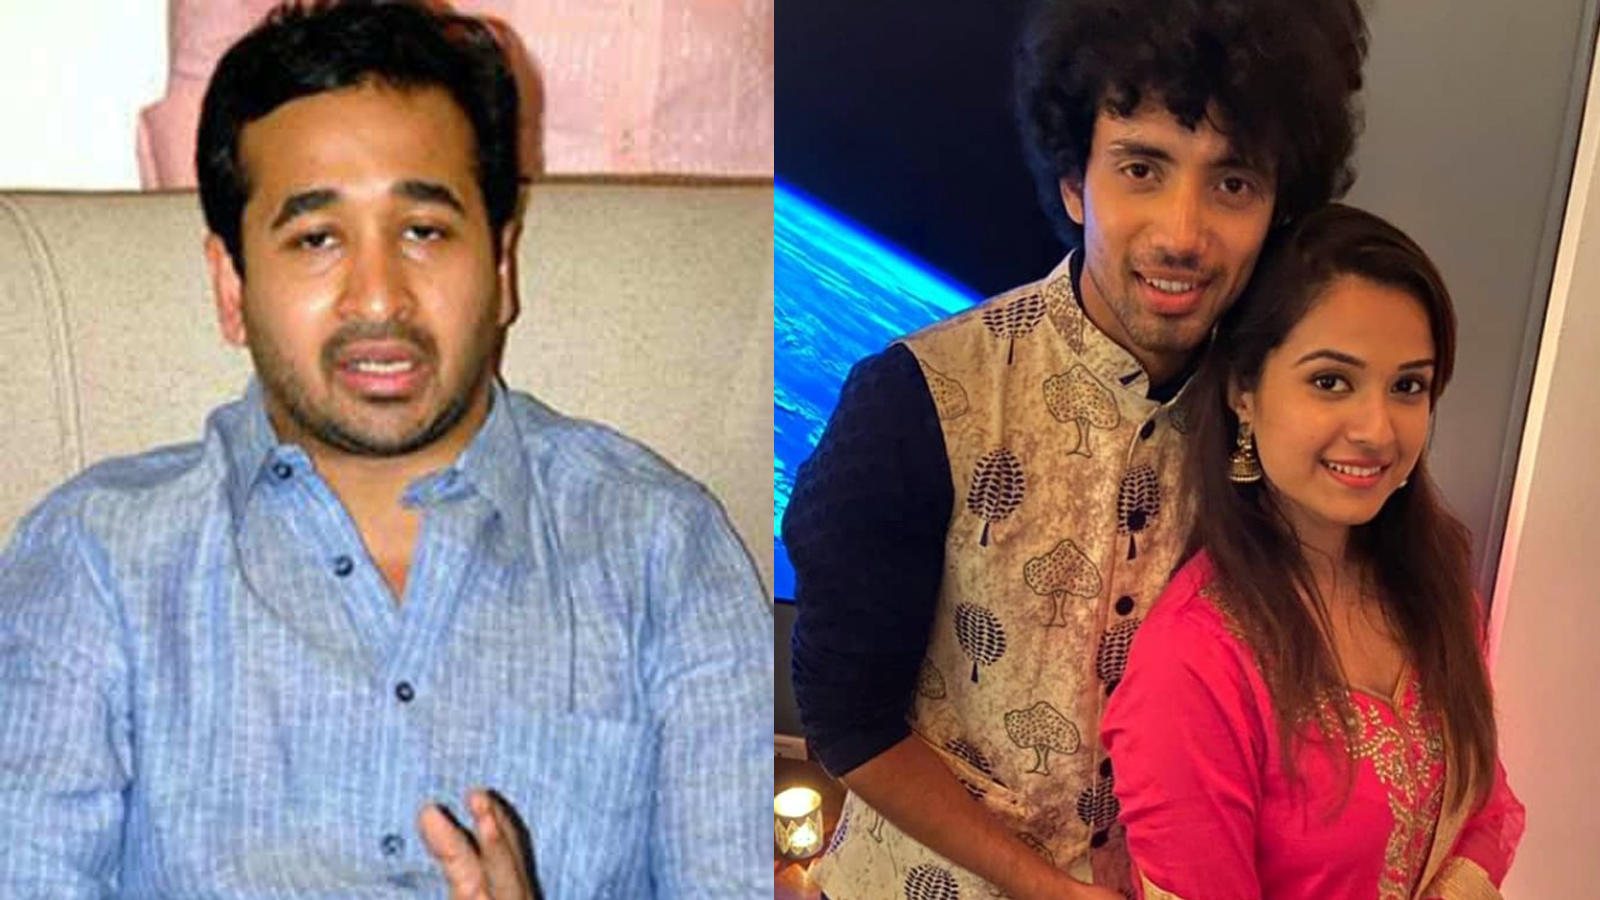 Shocking! BJP MLA Nitesh Rane claims Sushant Singh Rajput's ex-manager Disha  Salian's boyfriend Rohan Rai is scared for his life | Hindi Movie News -  Bollywood - Times of India